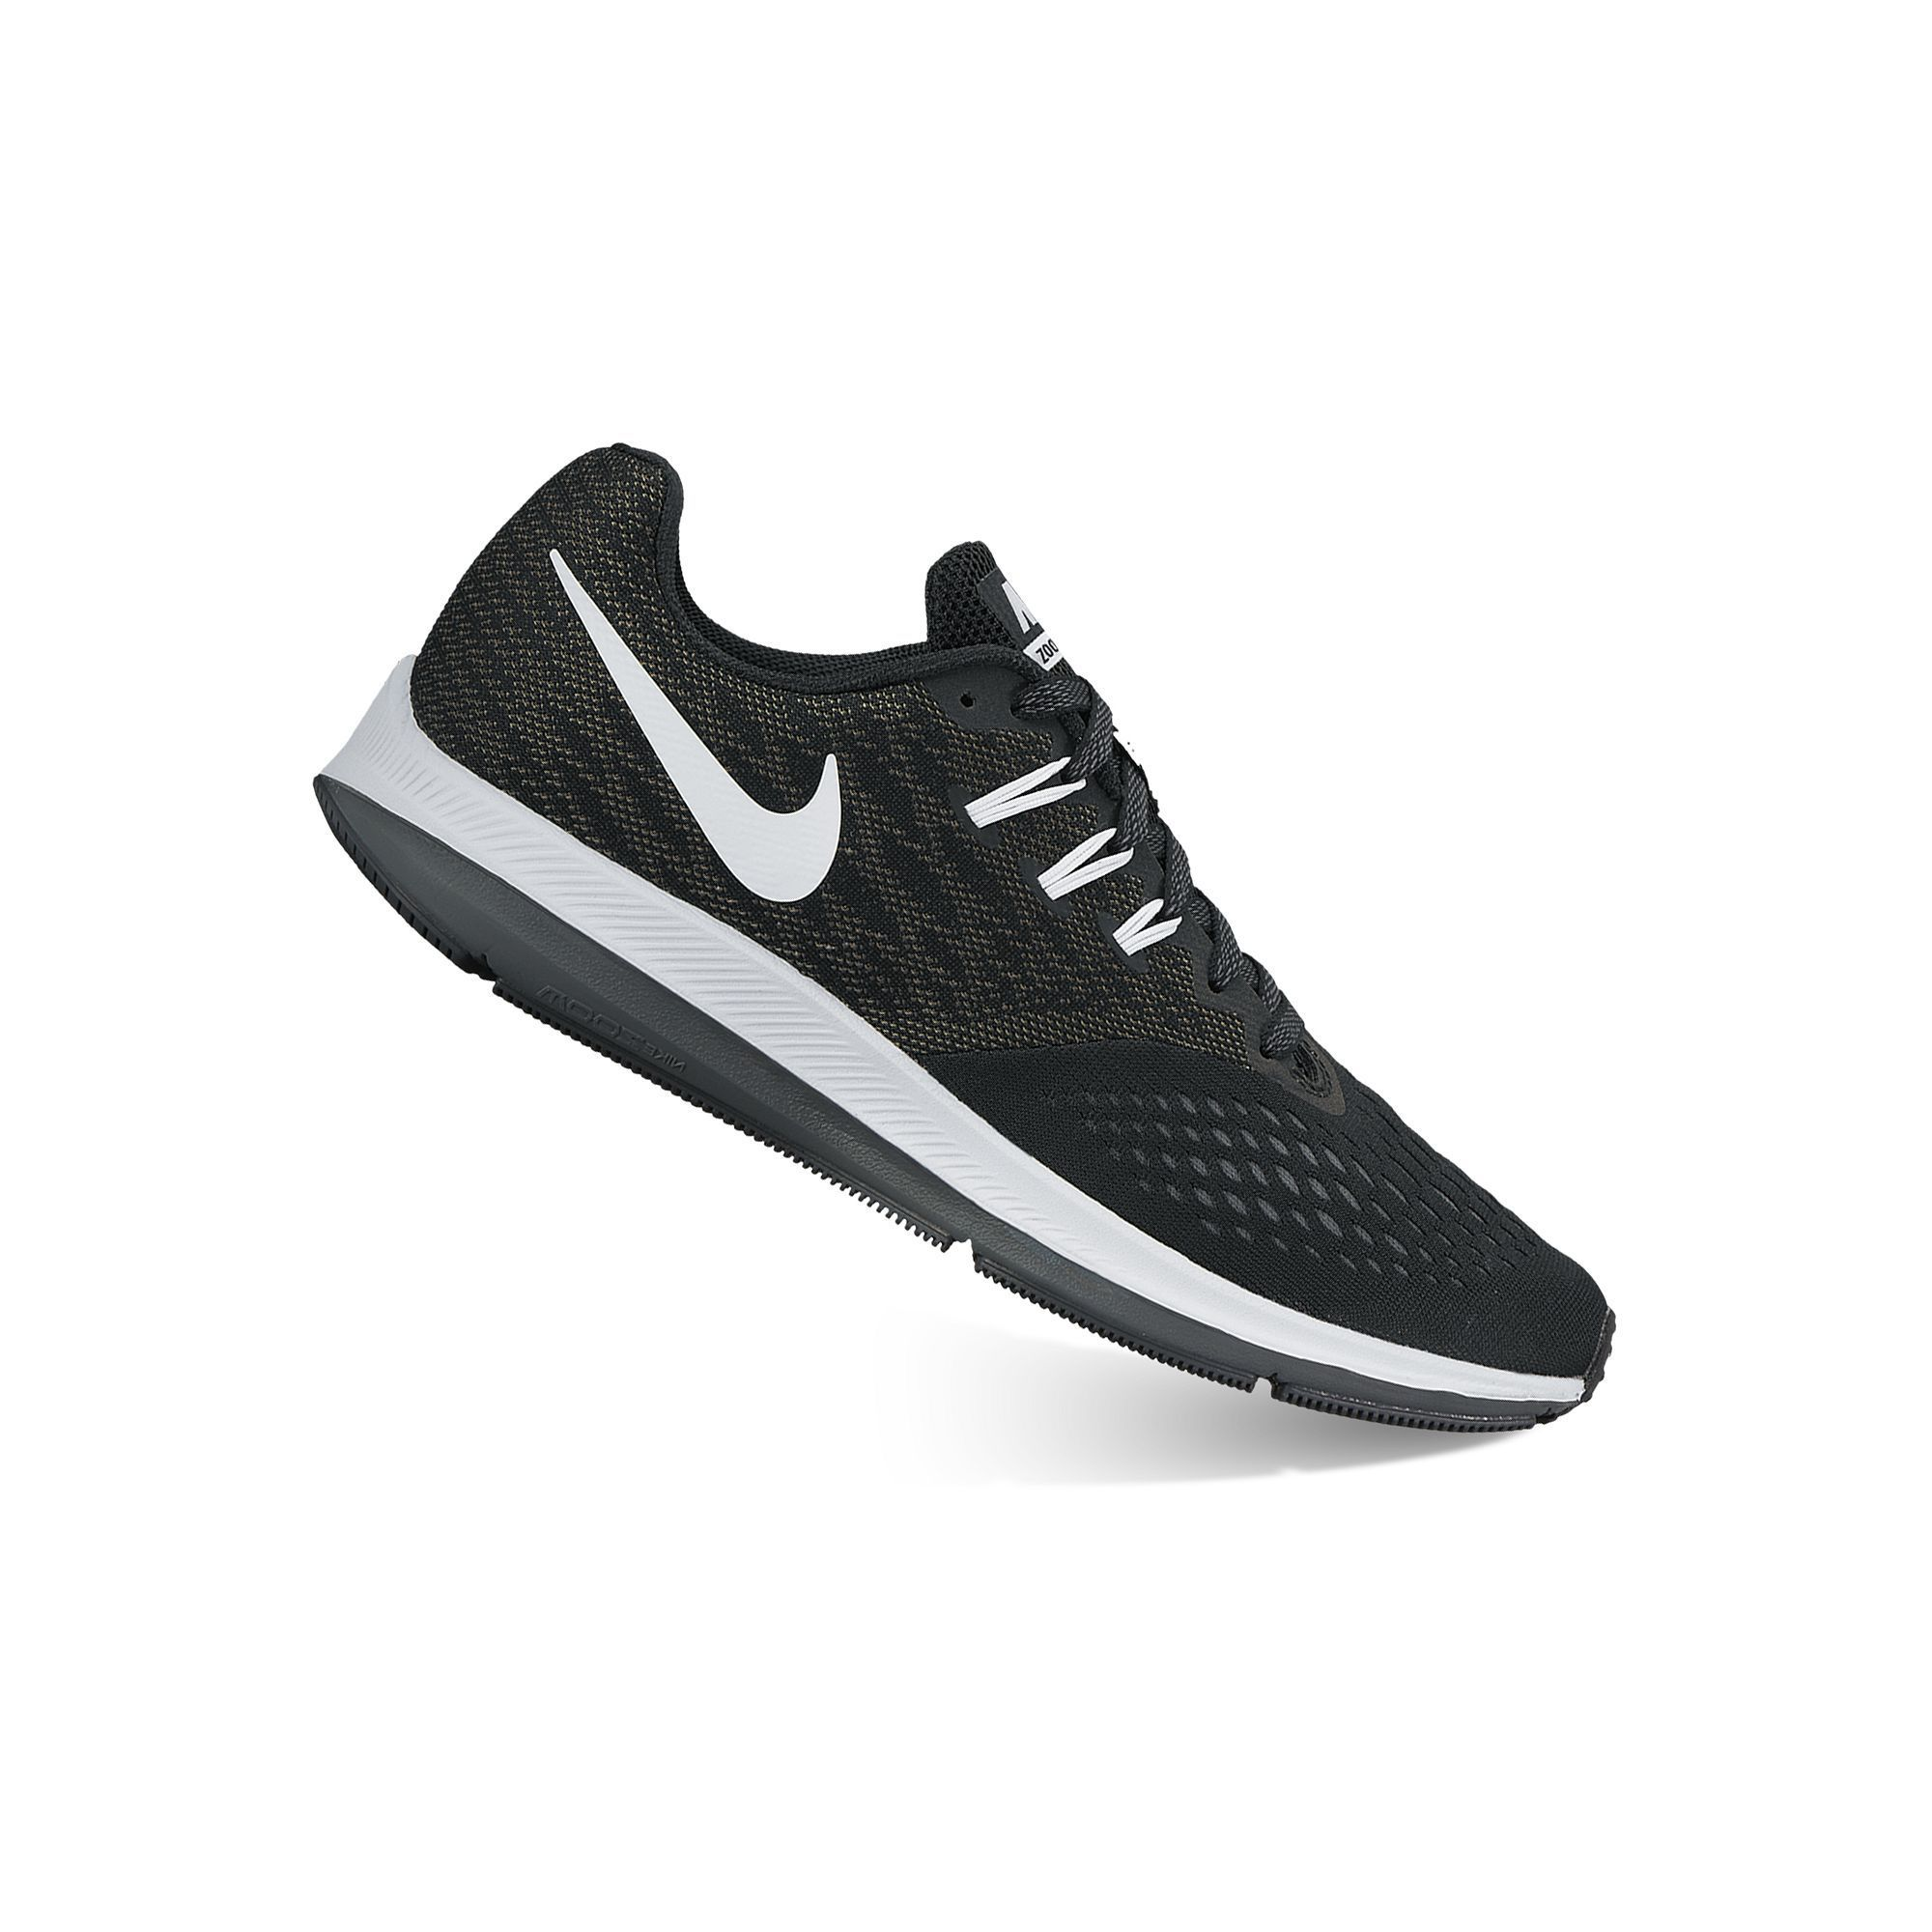 huge selection of c66d9 7c559 ... discount nike air zoom winflo 4 mens running shoes size 10.5 . 966c6  970a0